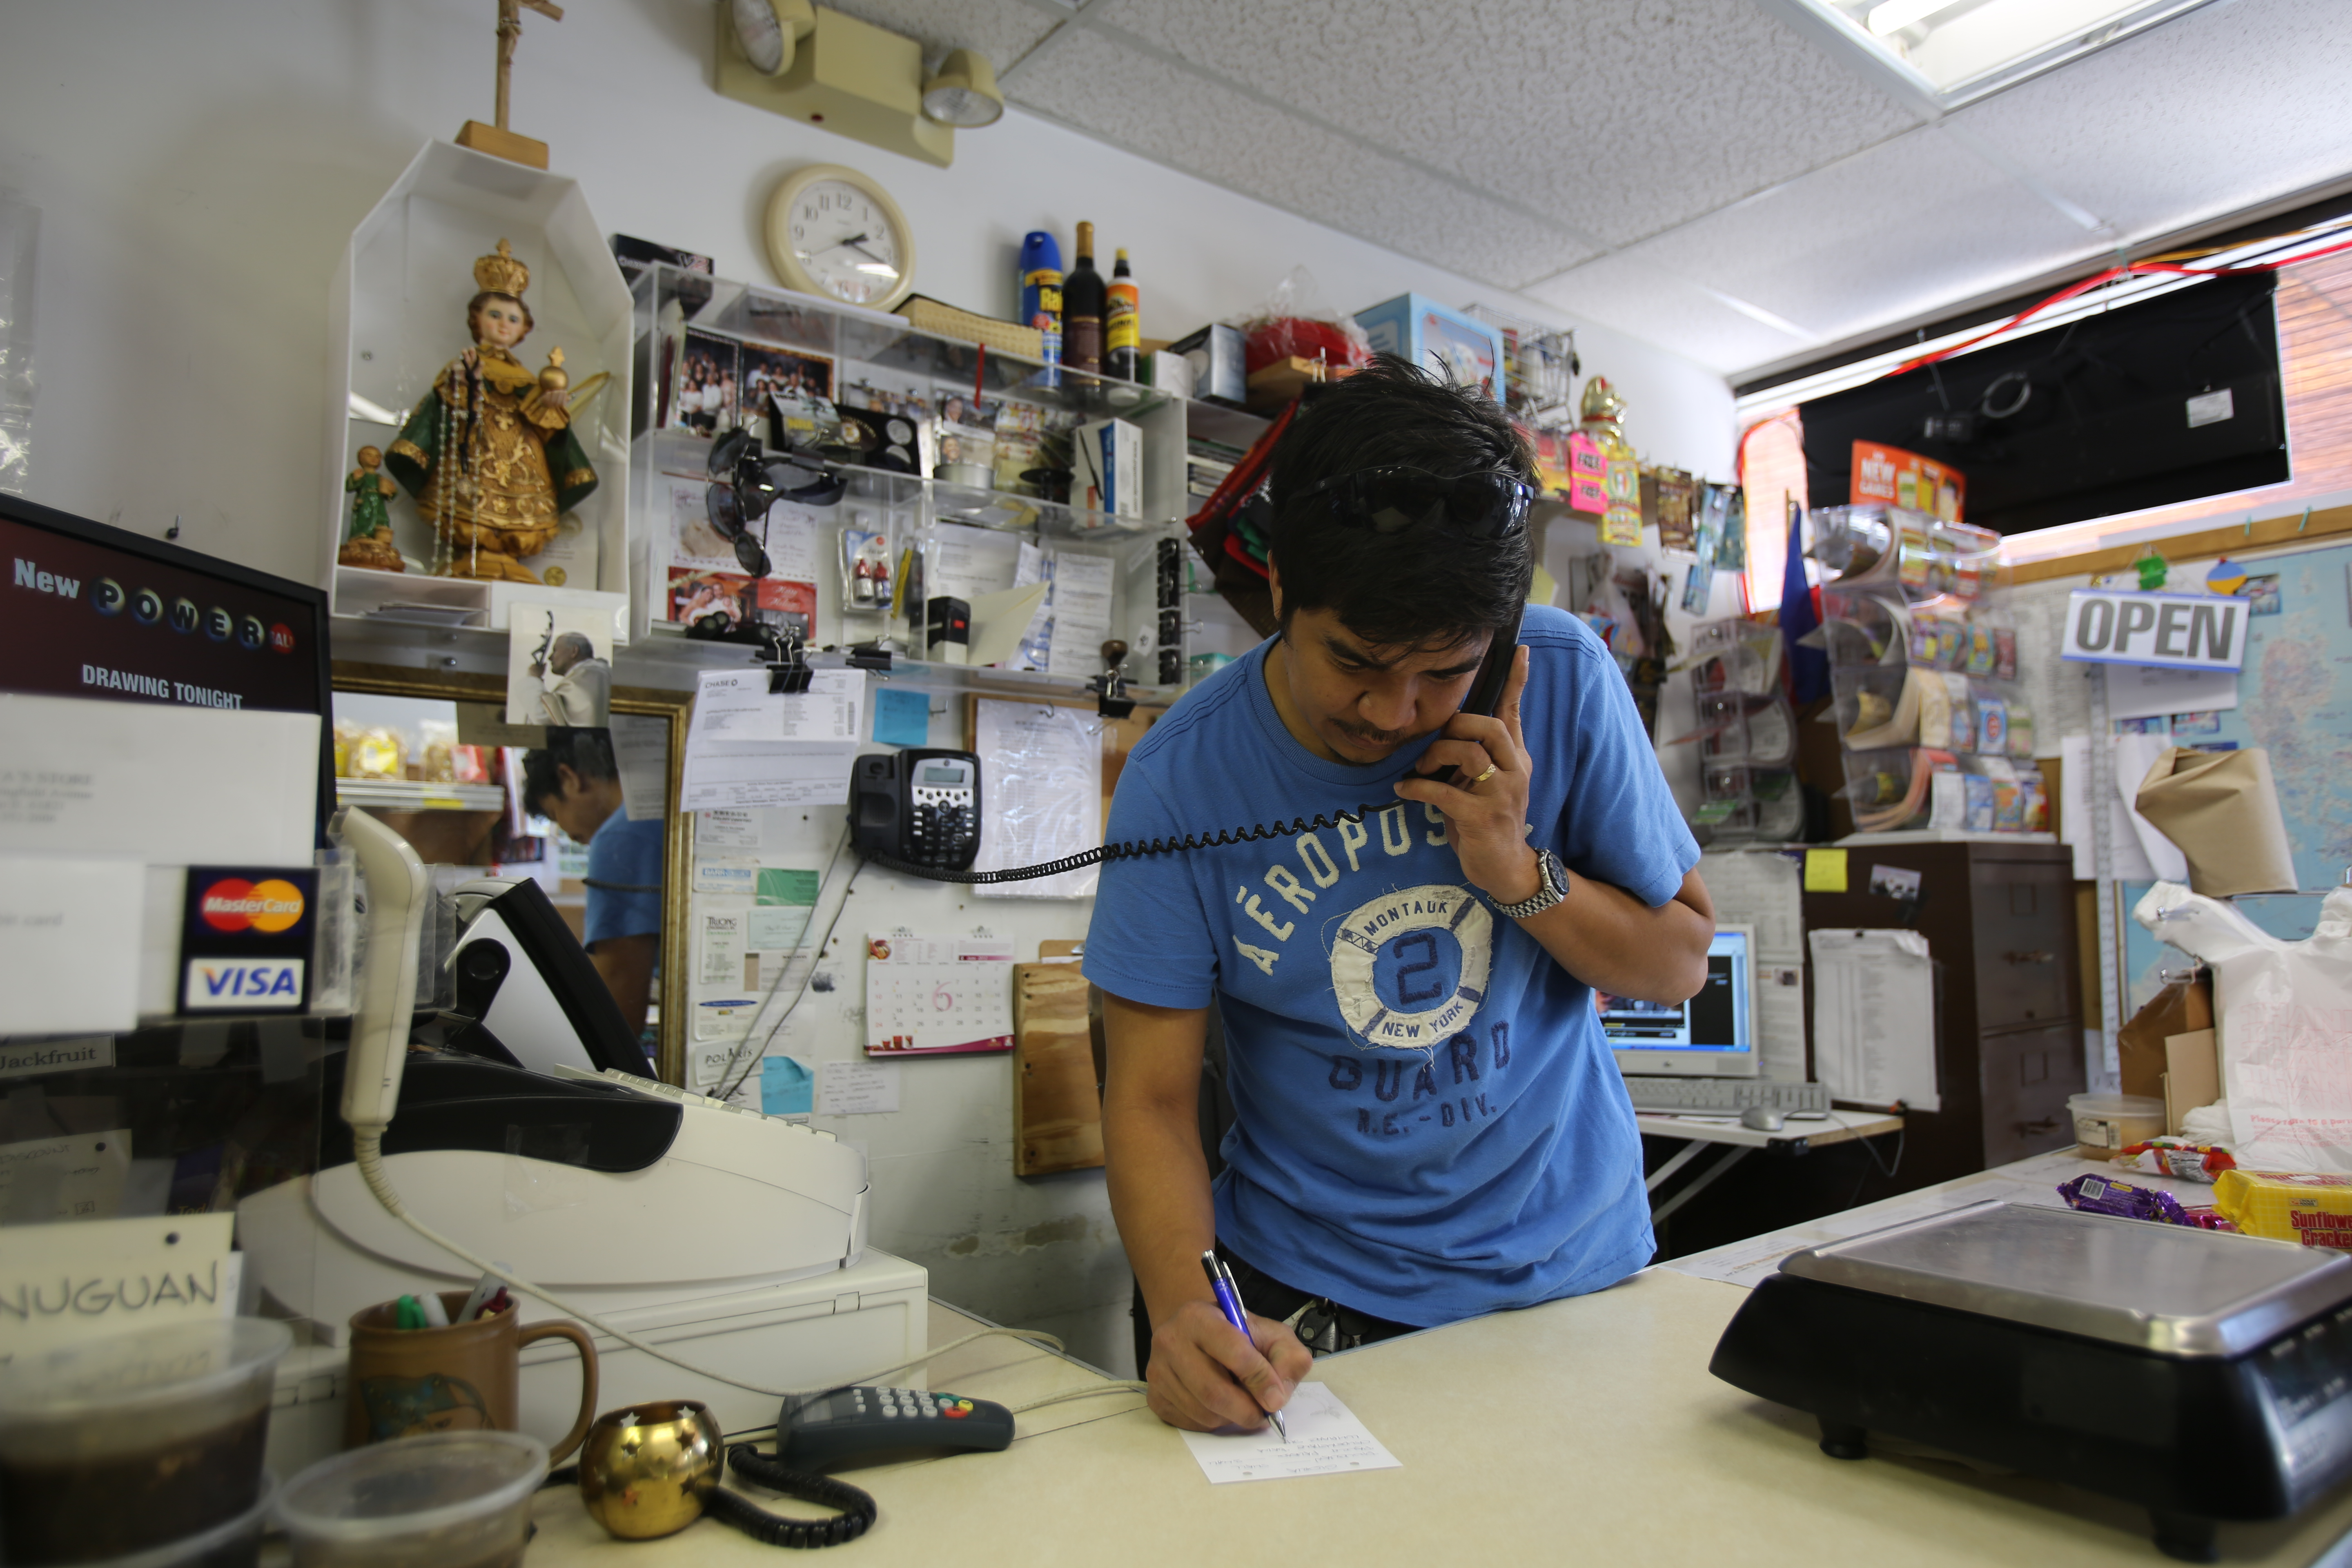 Eric Maligaya takes a call at Maligayas, a grocery store that caters explicitly to Filipino customers. He is the son of the owner and estimates that 70 to 80 percent of the customers are Filipinos looking for meats like adodo and menudo, steamed buns or siapao, sweet fruits or coconut milk.